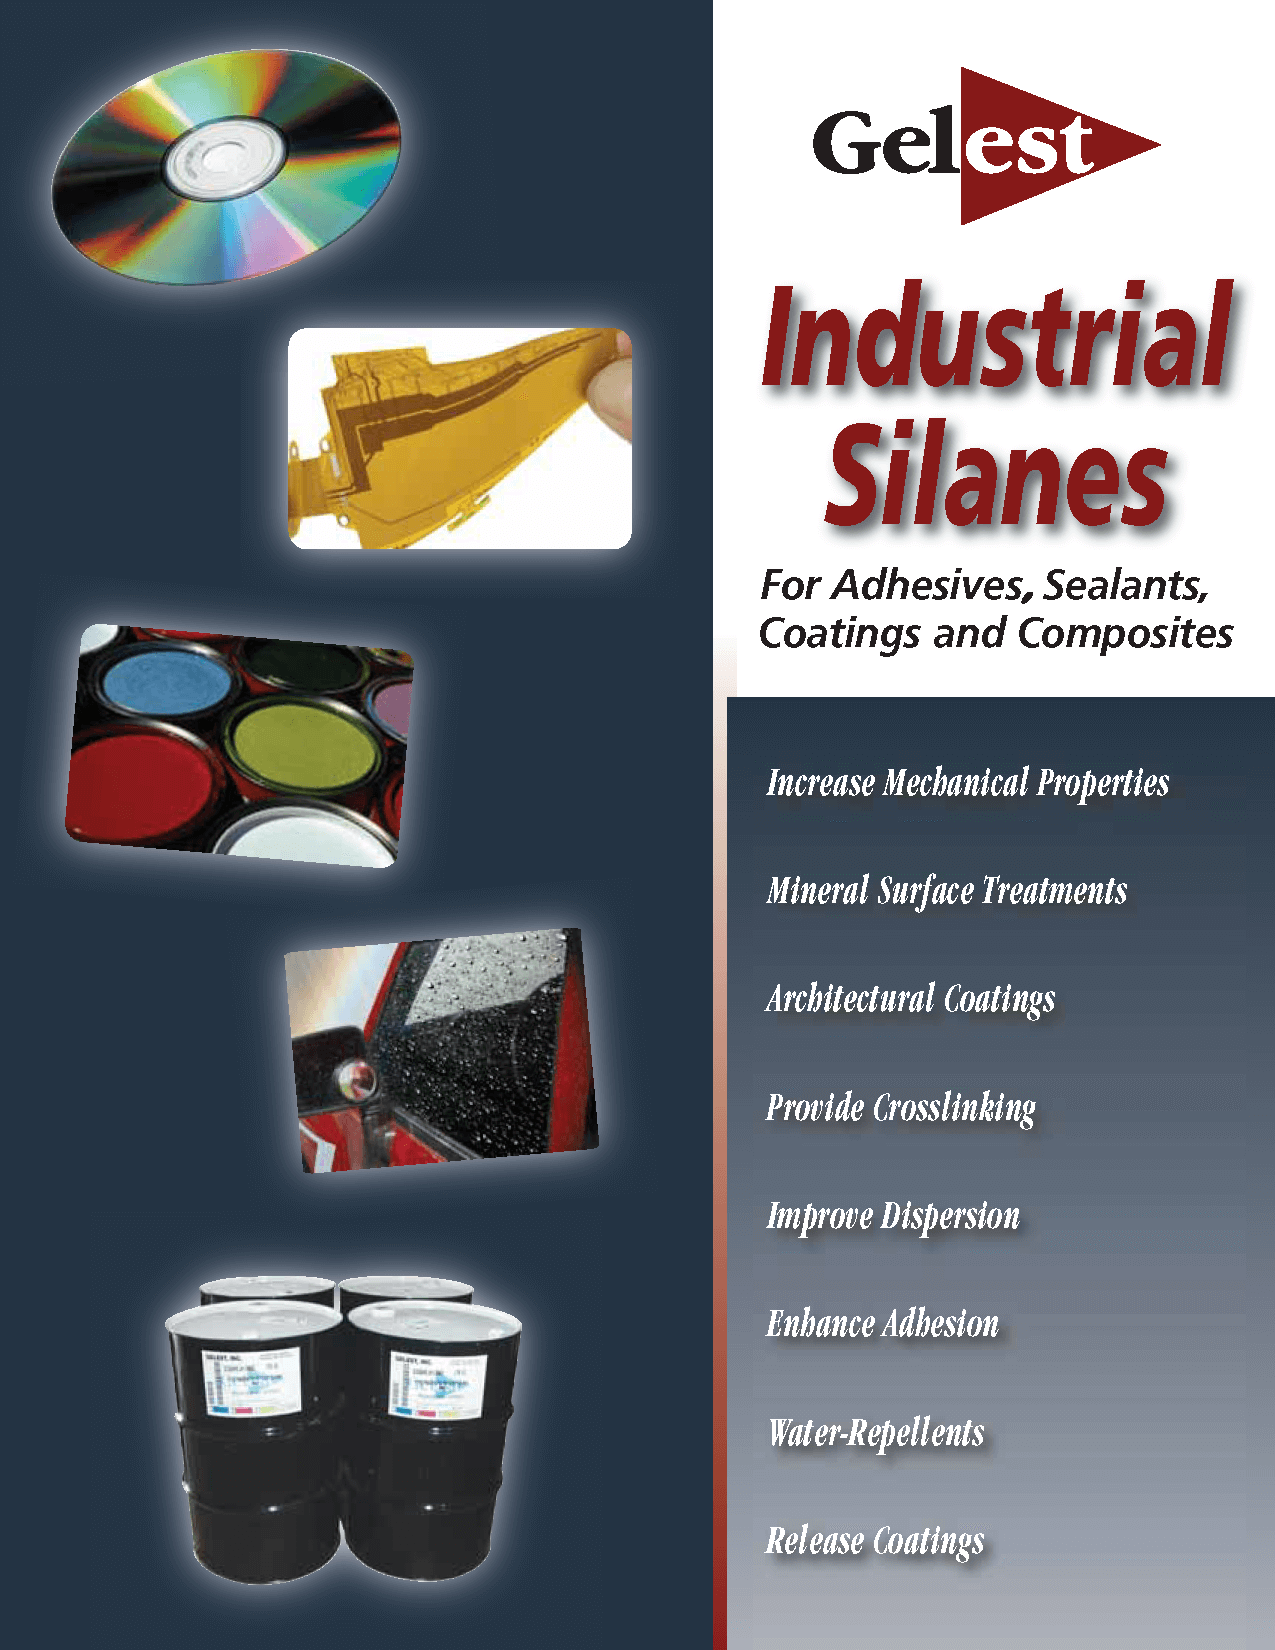 Industrial Silanes: for Adhesives, Sealants, Coatings and Composites